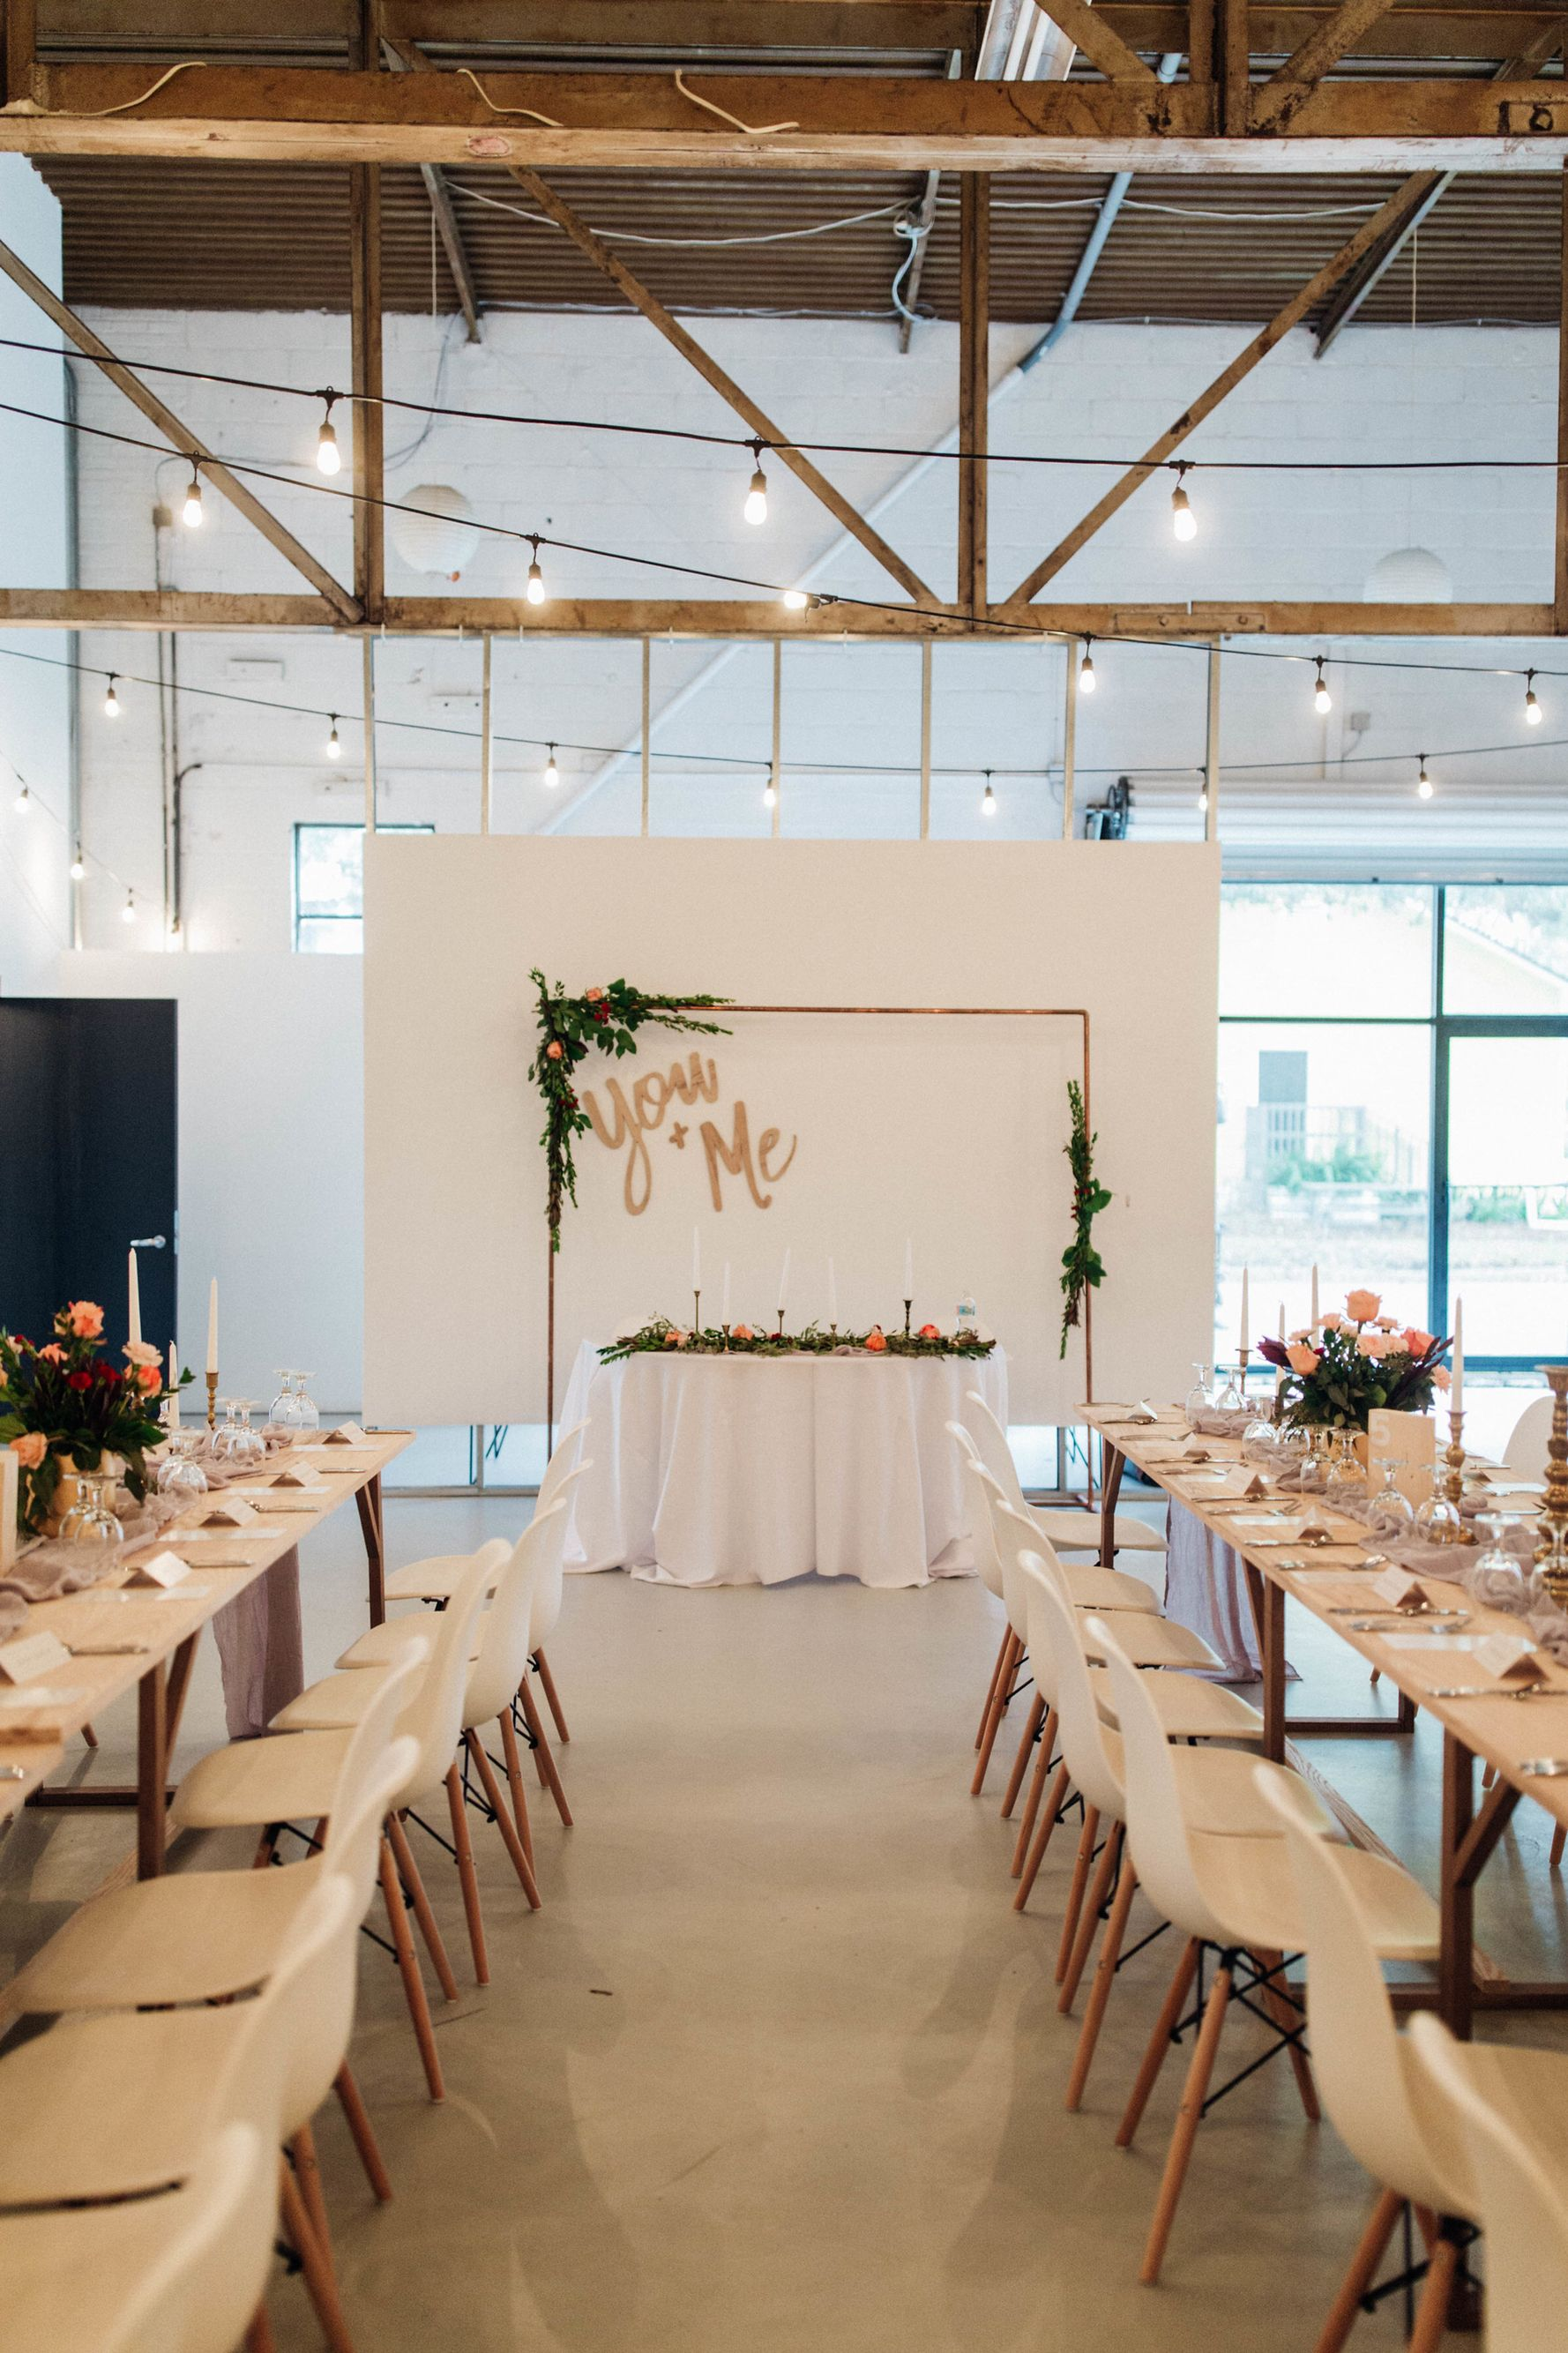 South Point Convention Center Weddings Jacksonville Wedding Venue